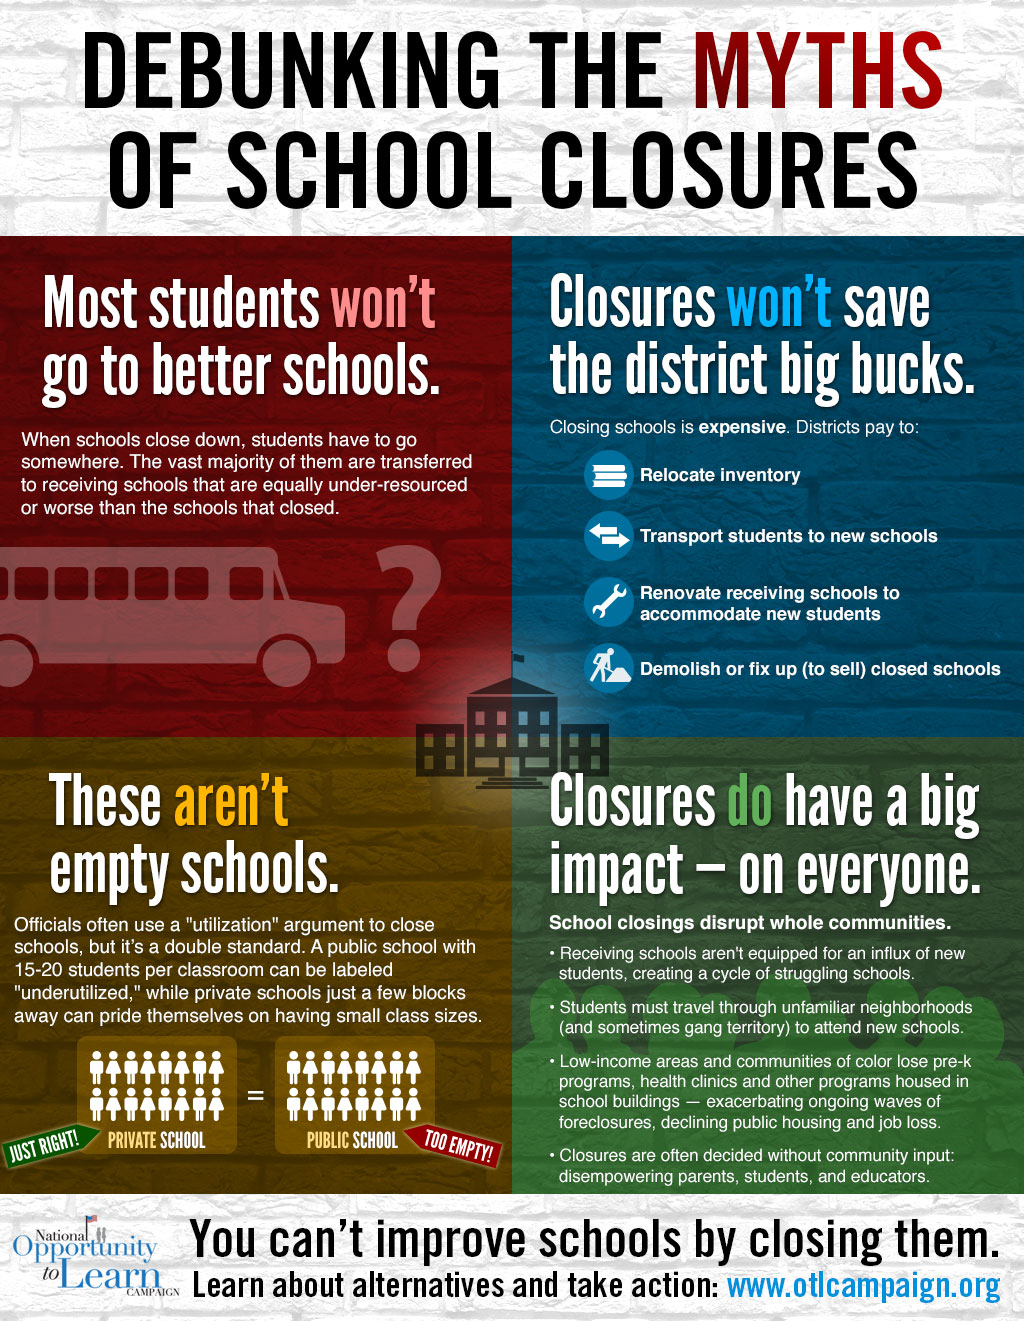 Myths of School Closures